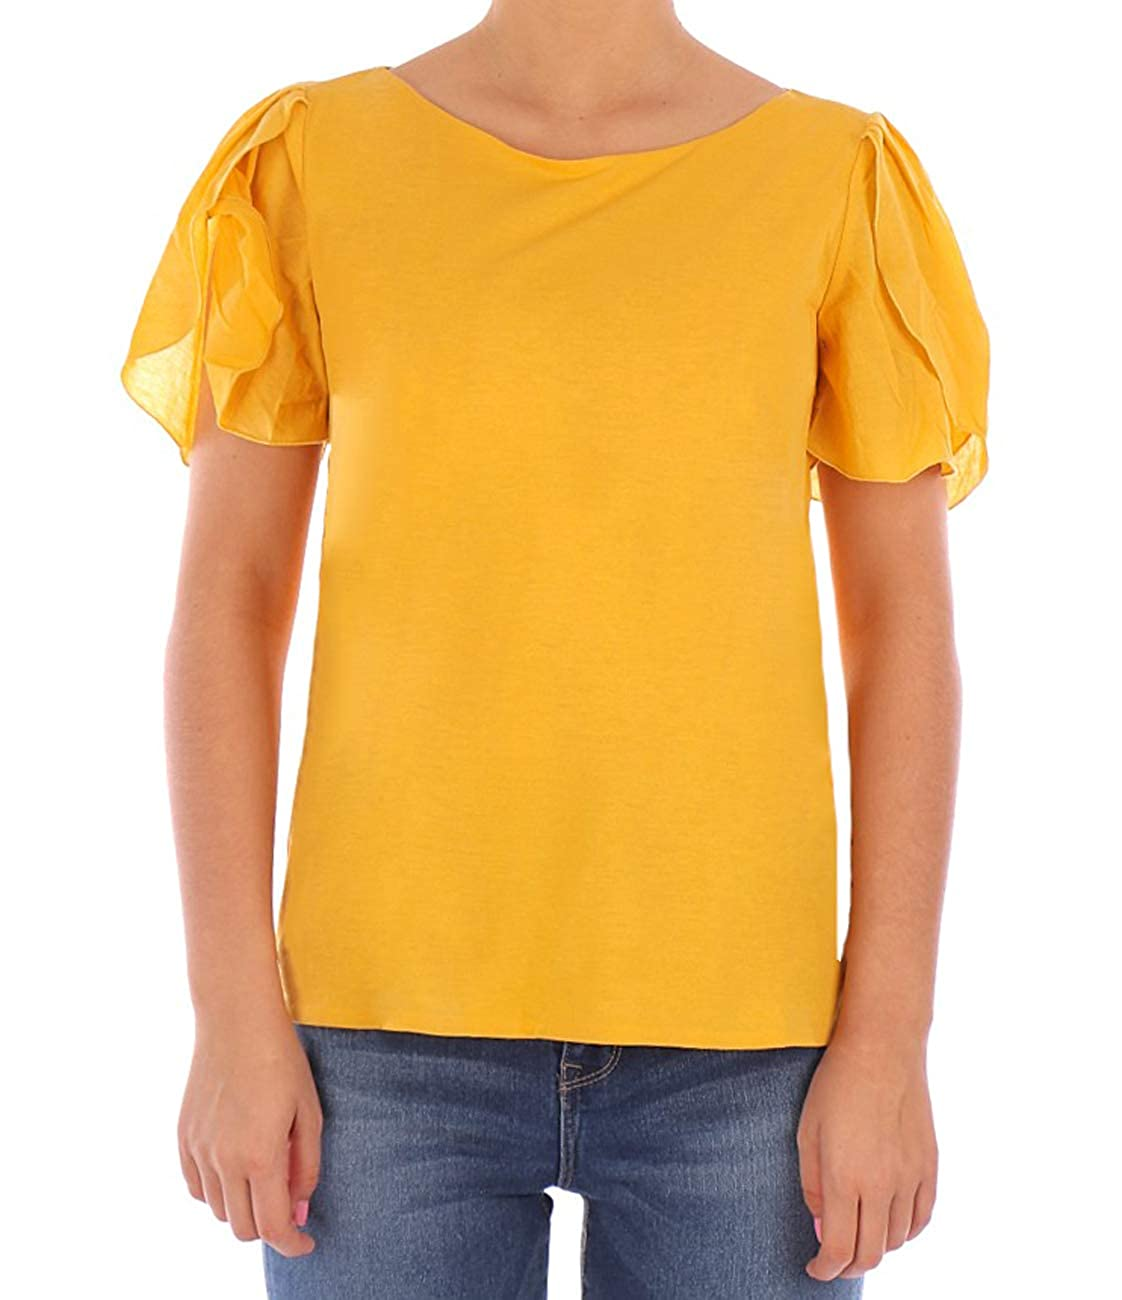 GranSasso Yellow t-Shirt